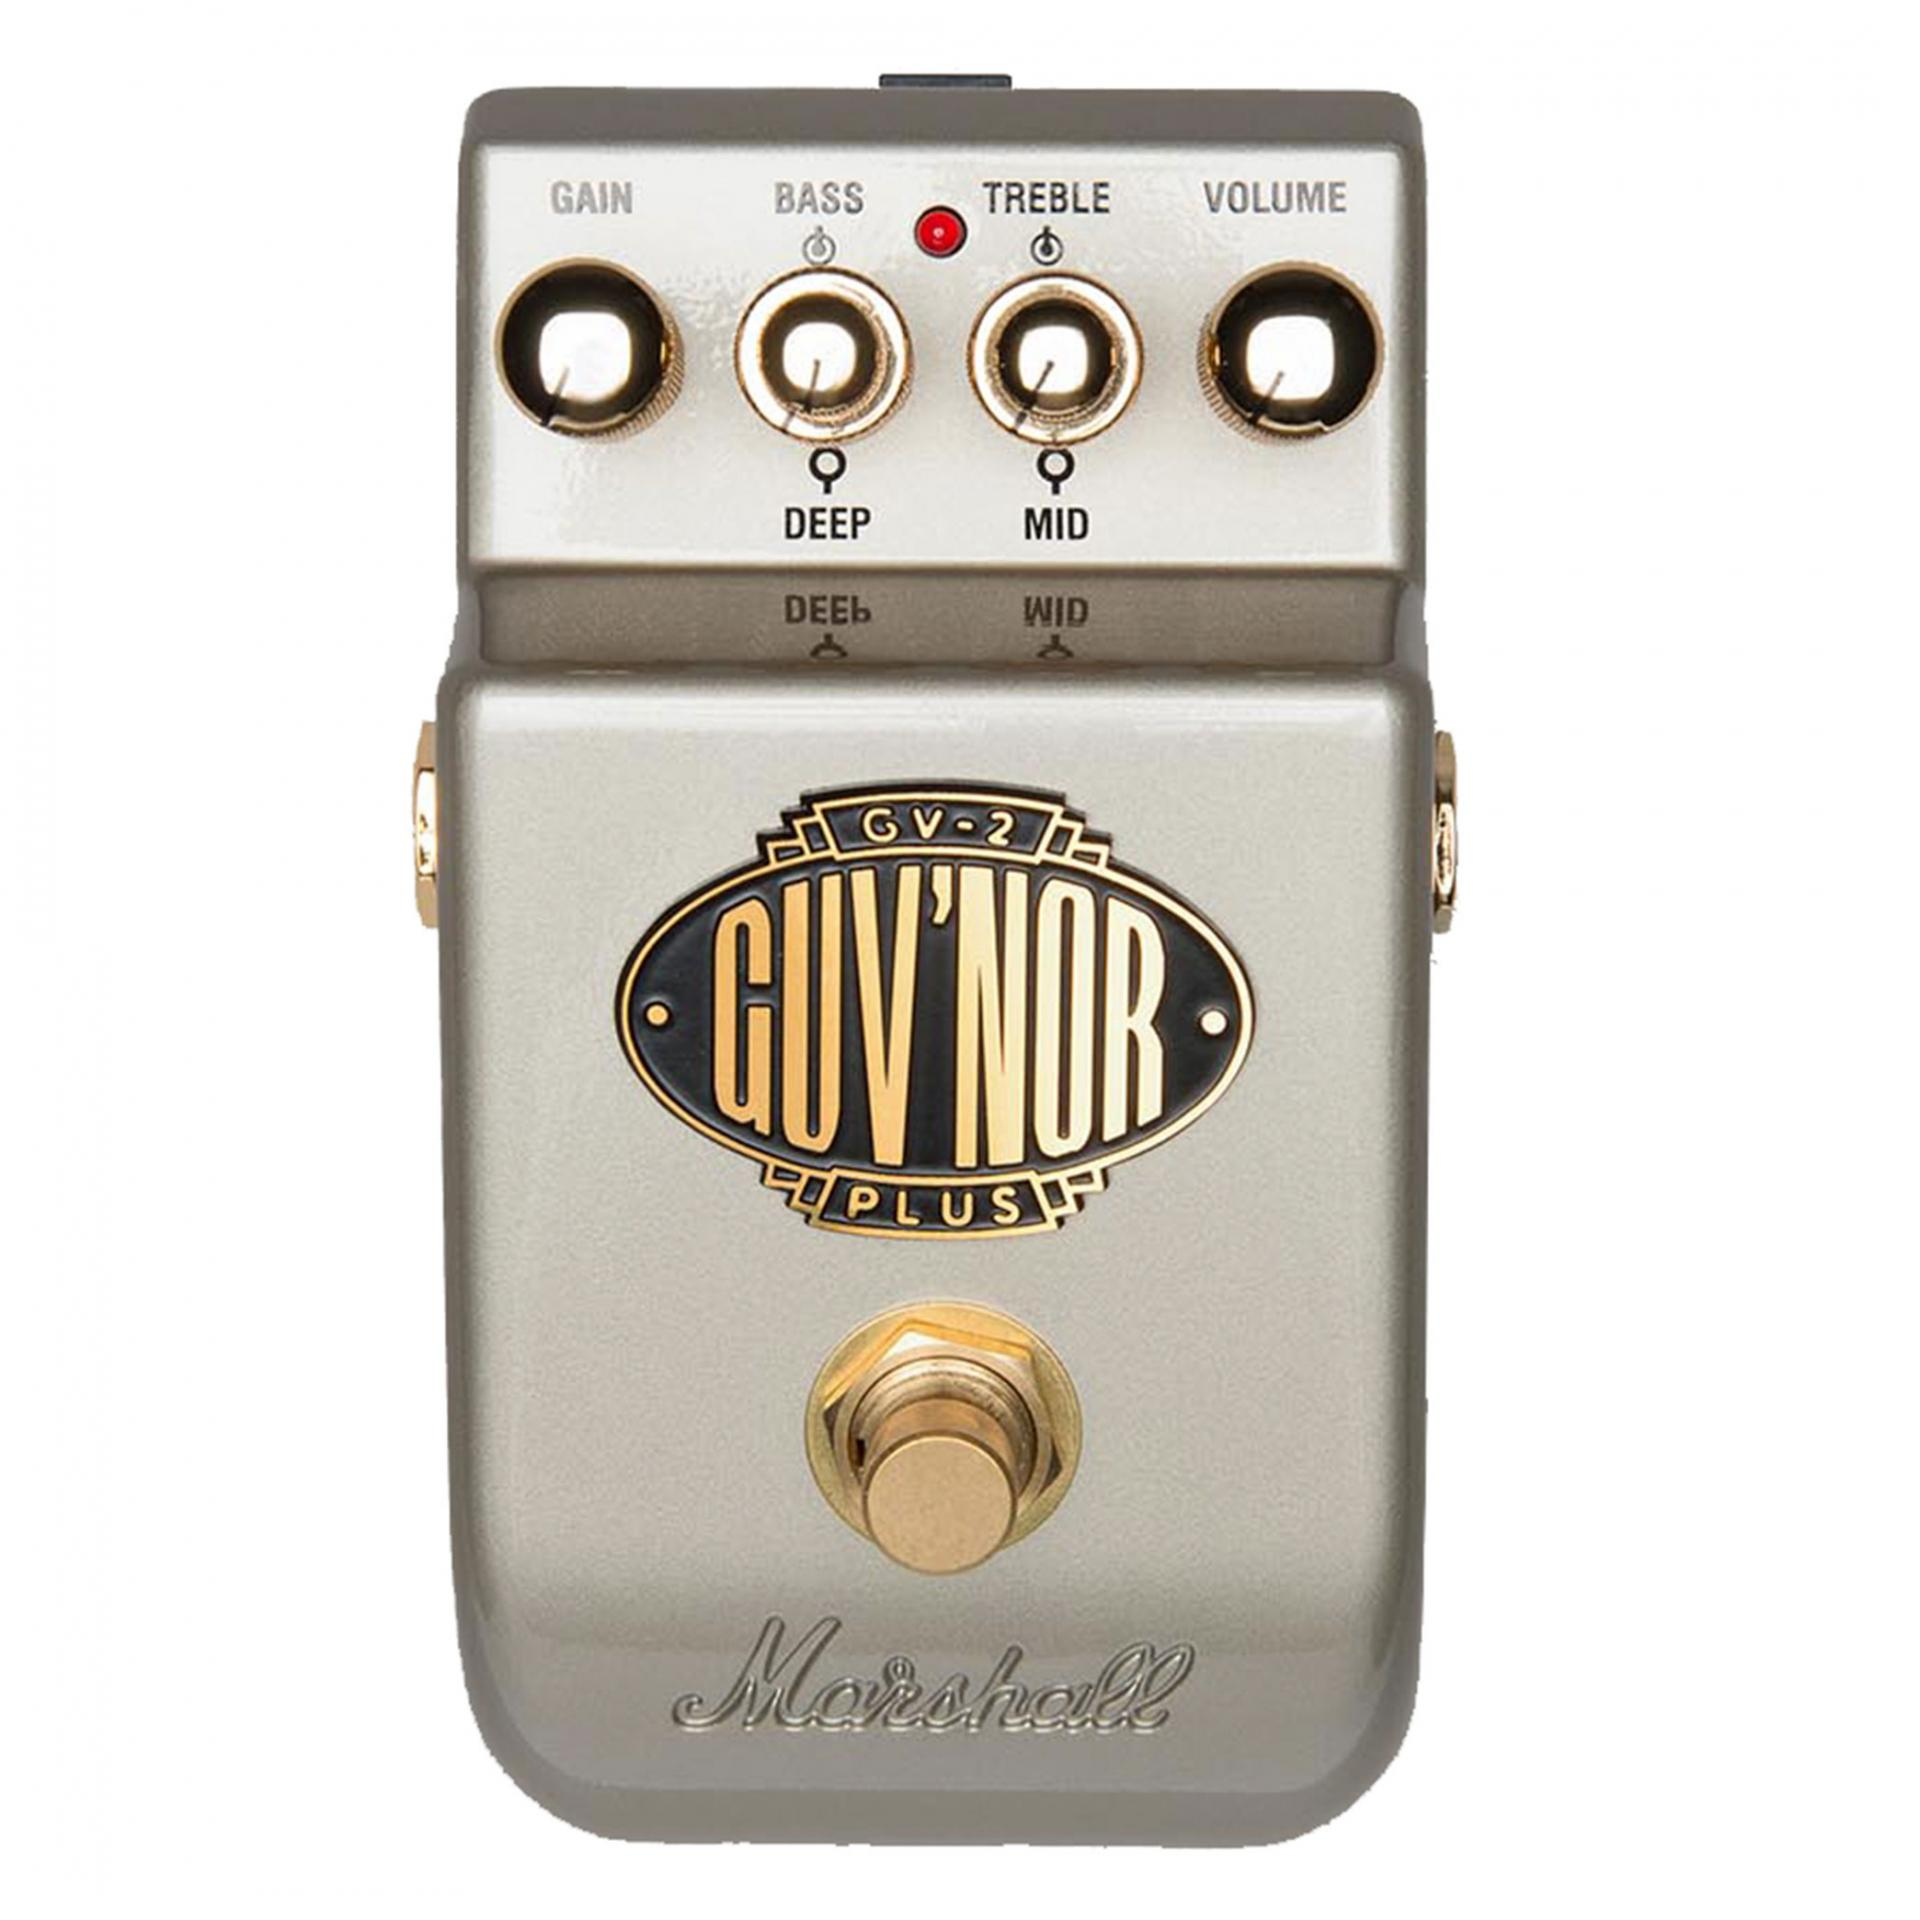 Pedal de distortion <strong>Marshall Guvnor......